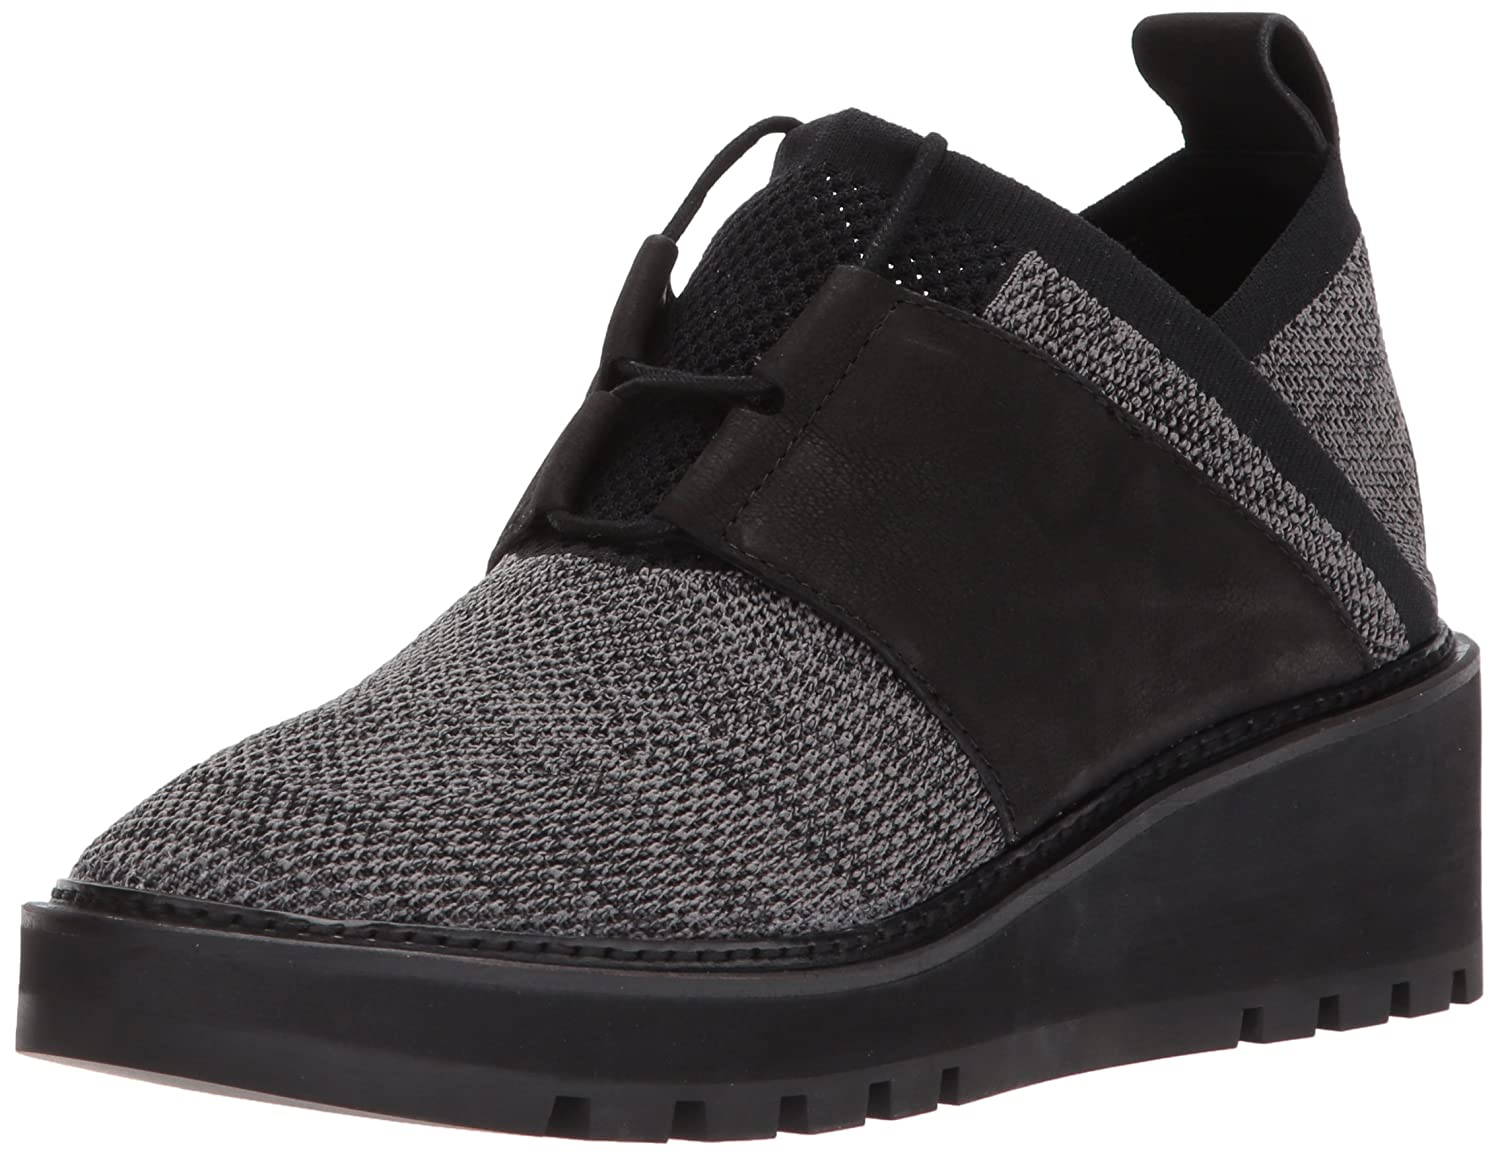 Eileen Fisher Women's Wilson Ankle Boot B06XS7N642 11 M US|Black/Graphite